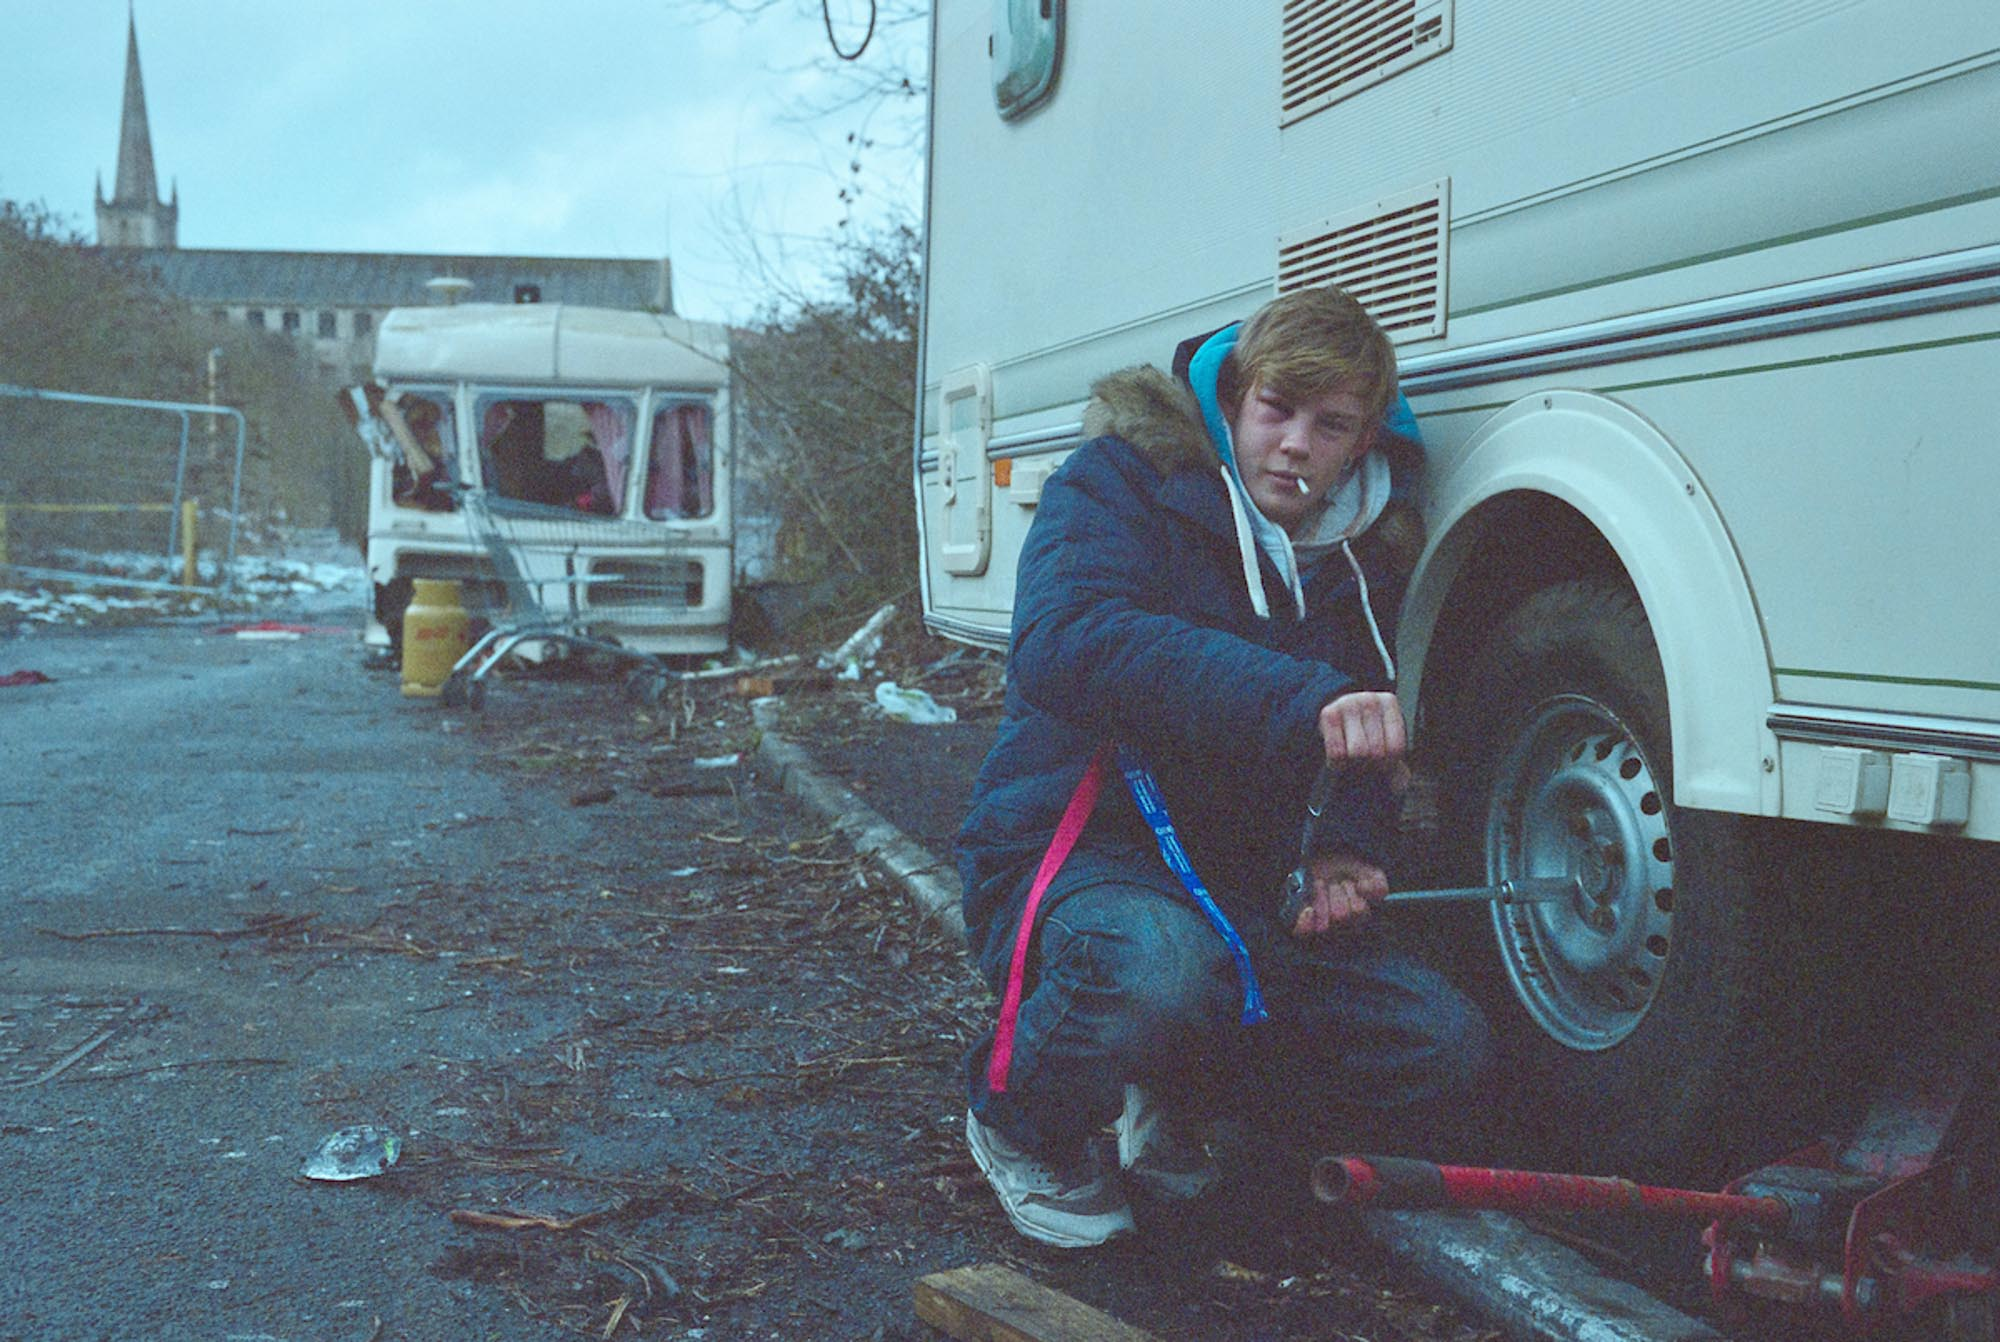 Alby's van falls victim to vandalism after he left the site to travel to the North, while Morgan works to remove his caravan wheels to avoid being towed away. March 2018, Fujifilm Pro 800